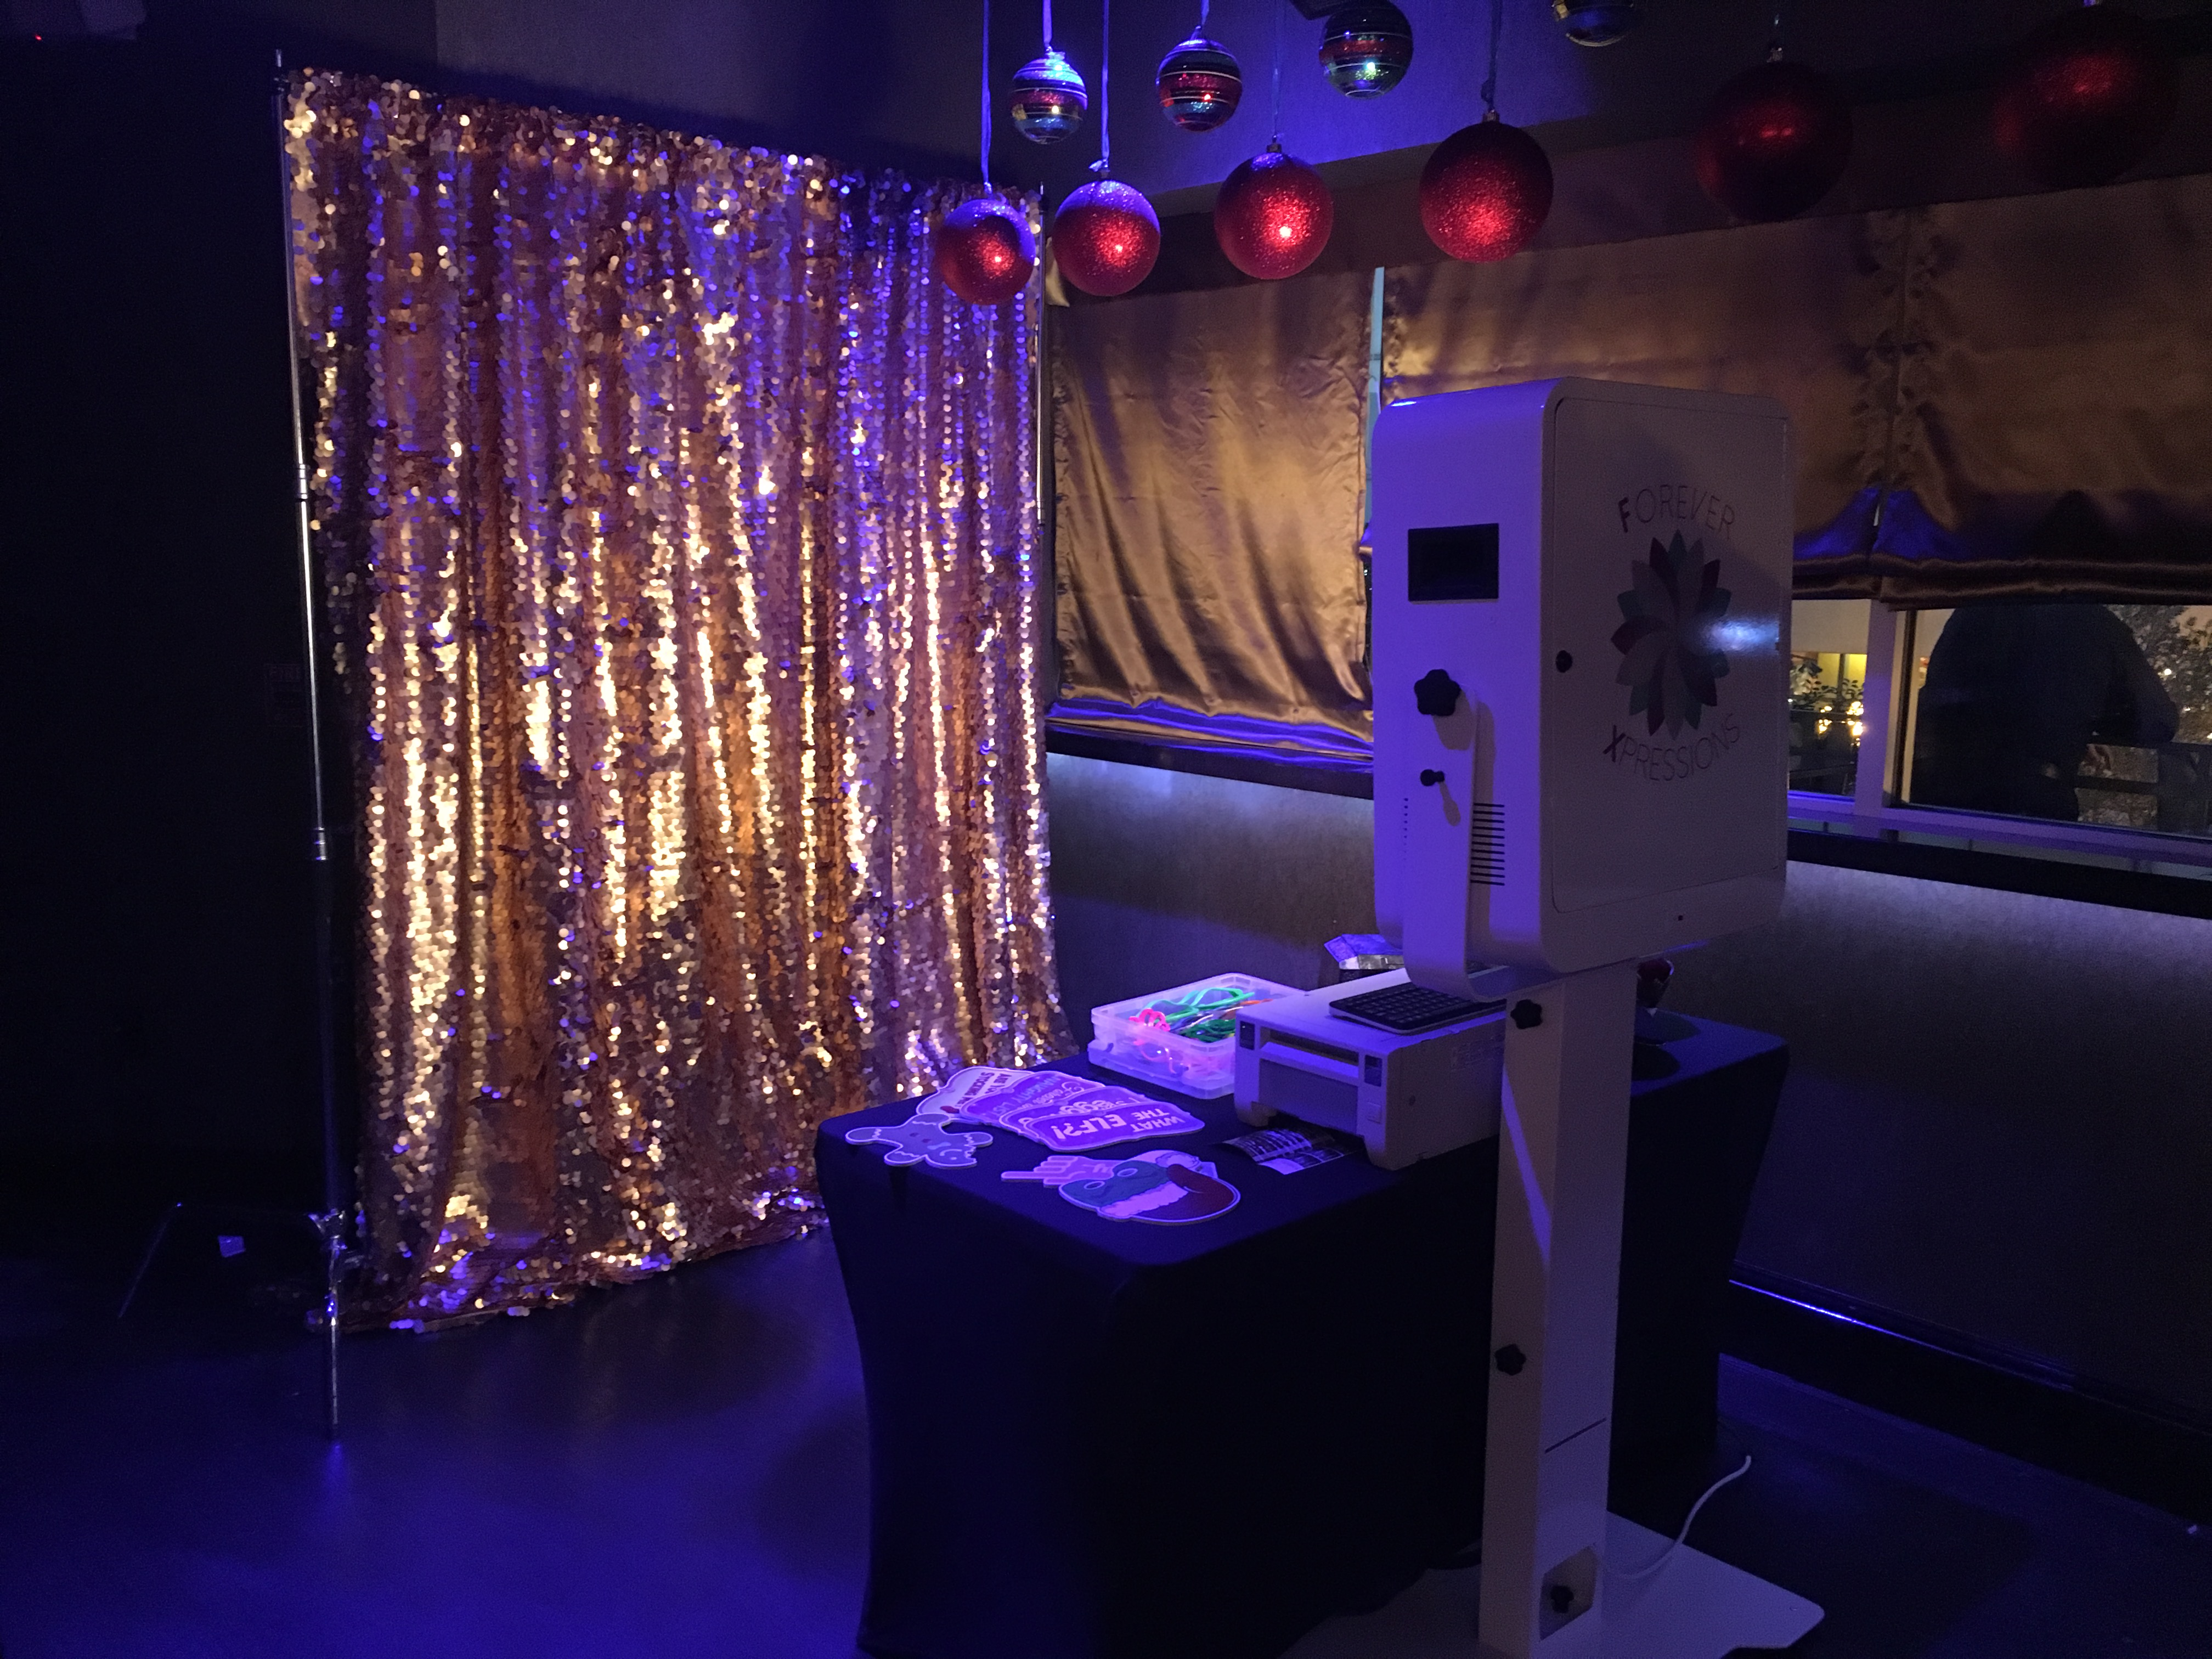 Open Air Photo Kiosk with Gold Sequins Backdrop 7x7 floor space